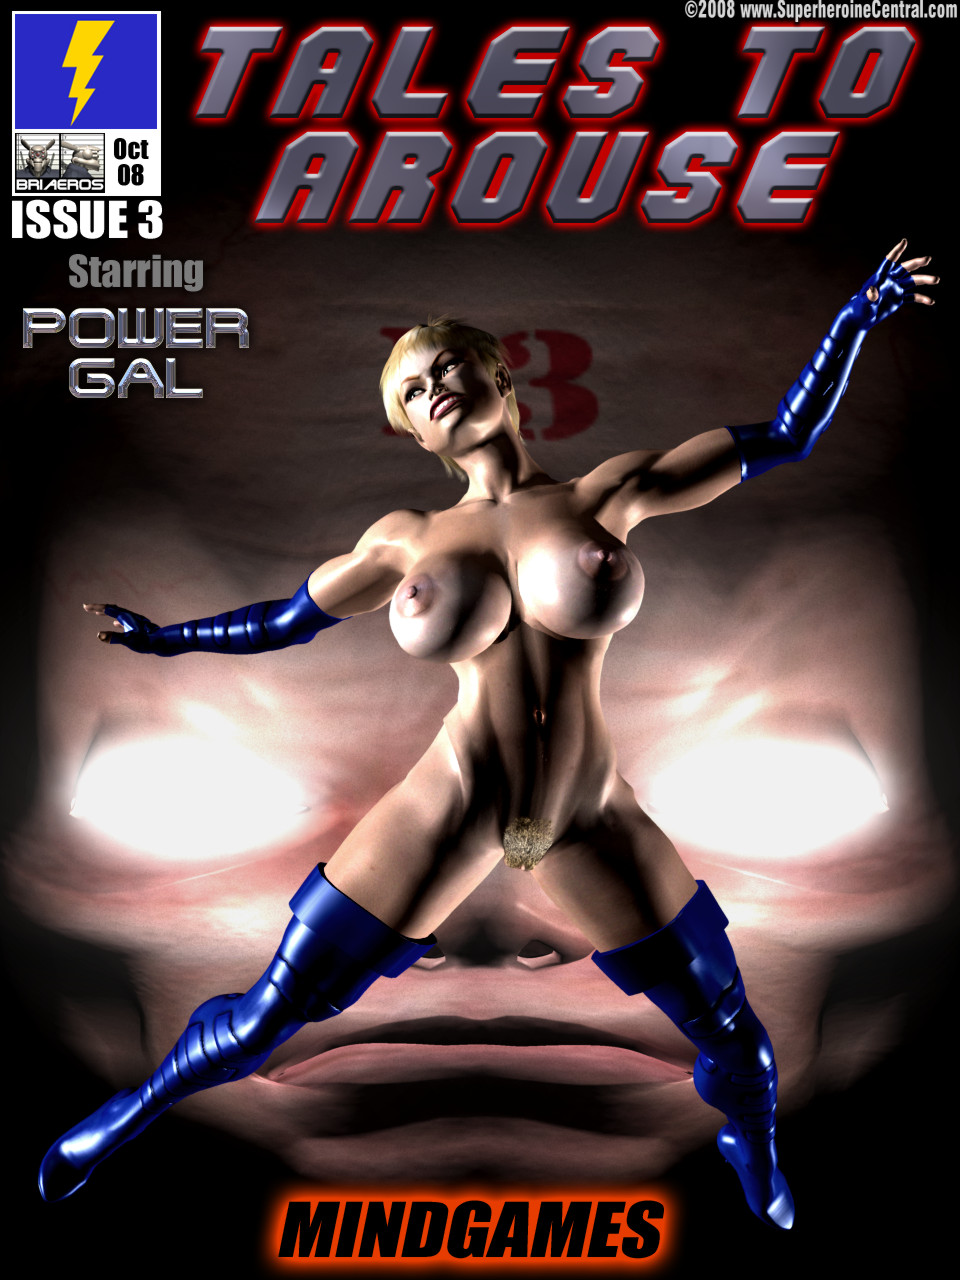 Power Gal in Mind Games # 3-3D Superheroine Central image 01